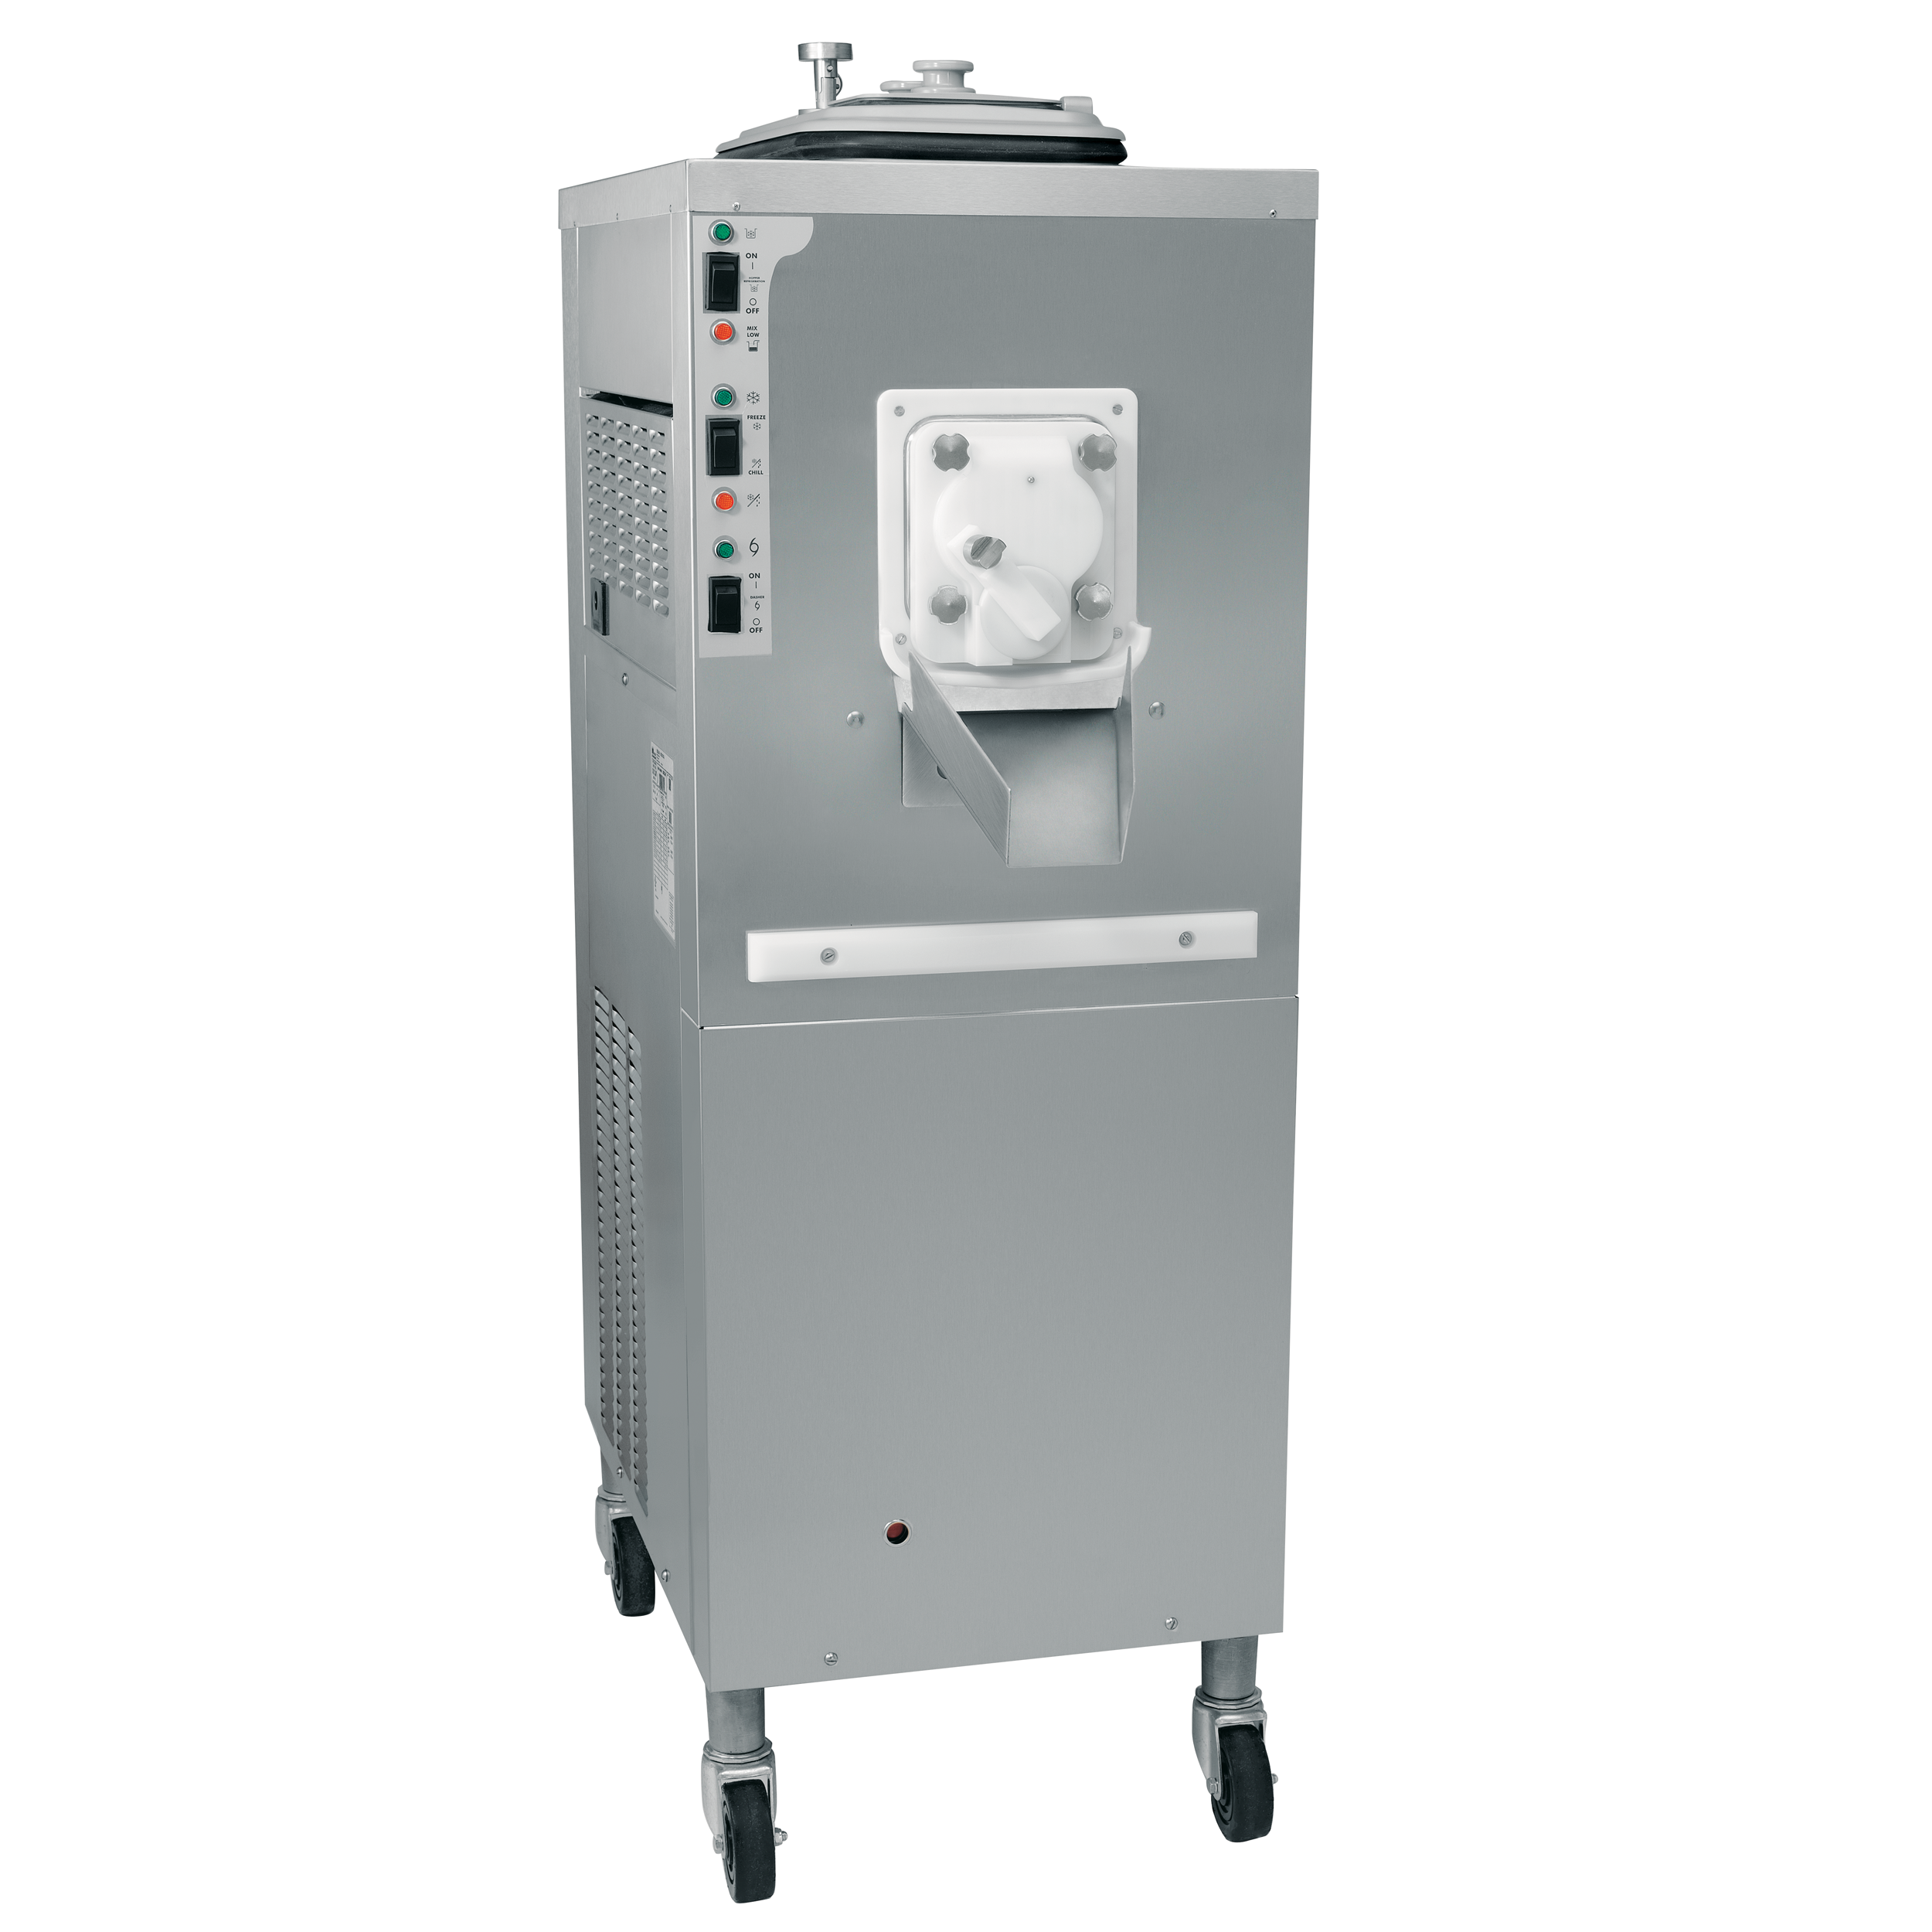 Model C001   Continuous Dispensing Custard Freezer  Offer premium frozen custard, low overrun ice cream or sorbet.  KEY SPECIFICATIONS:   Finished Products : Batch   Installation : Floor   Number of Flavors : 1   Freezing Cylinder QTY : 1   Freezing Cylinder Size (qt/l) : NA